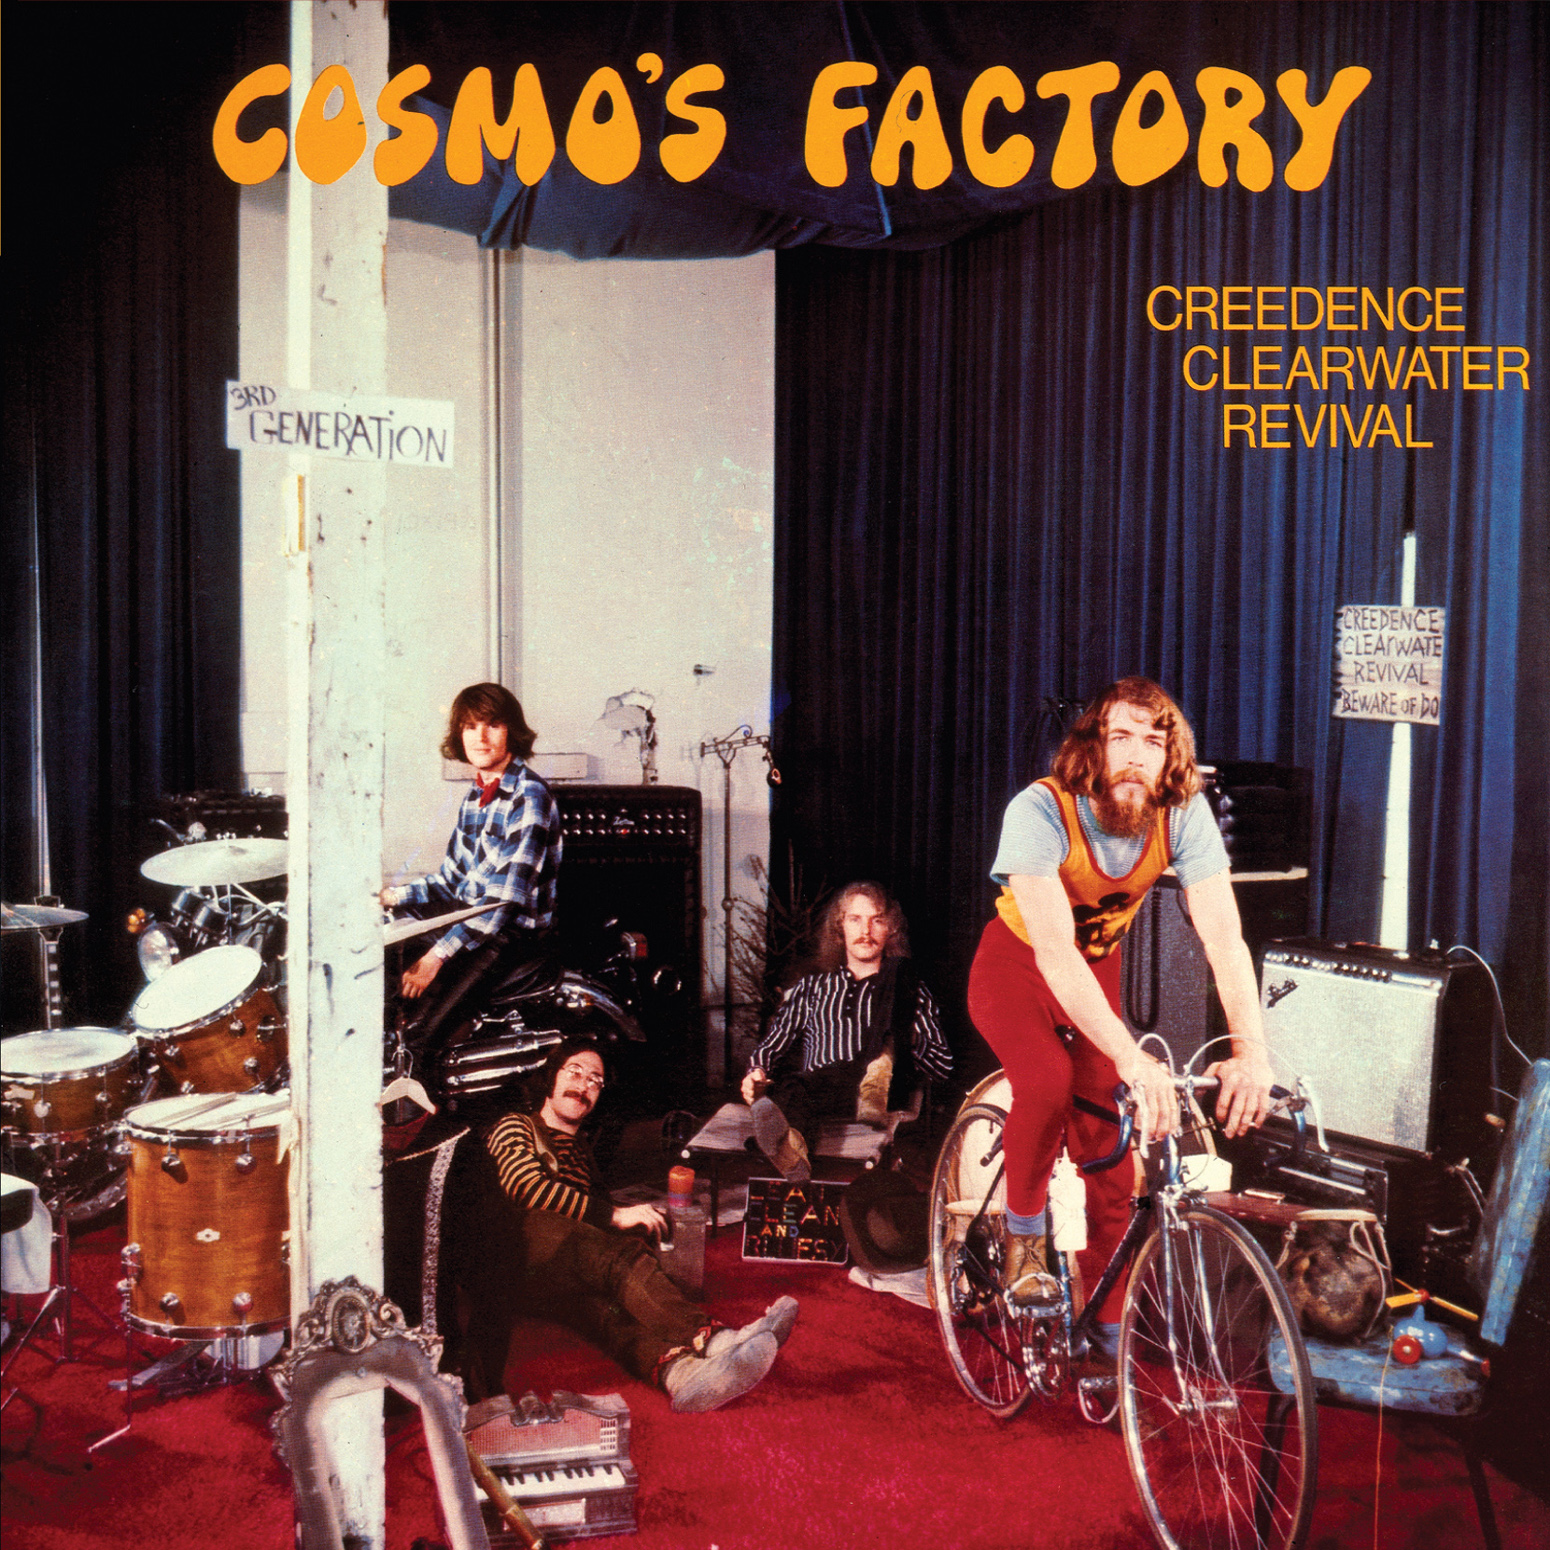 20 Best Creedence Clearwater Revival Songs   Aphoristic Album Reviews